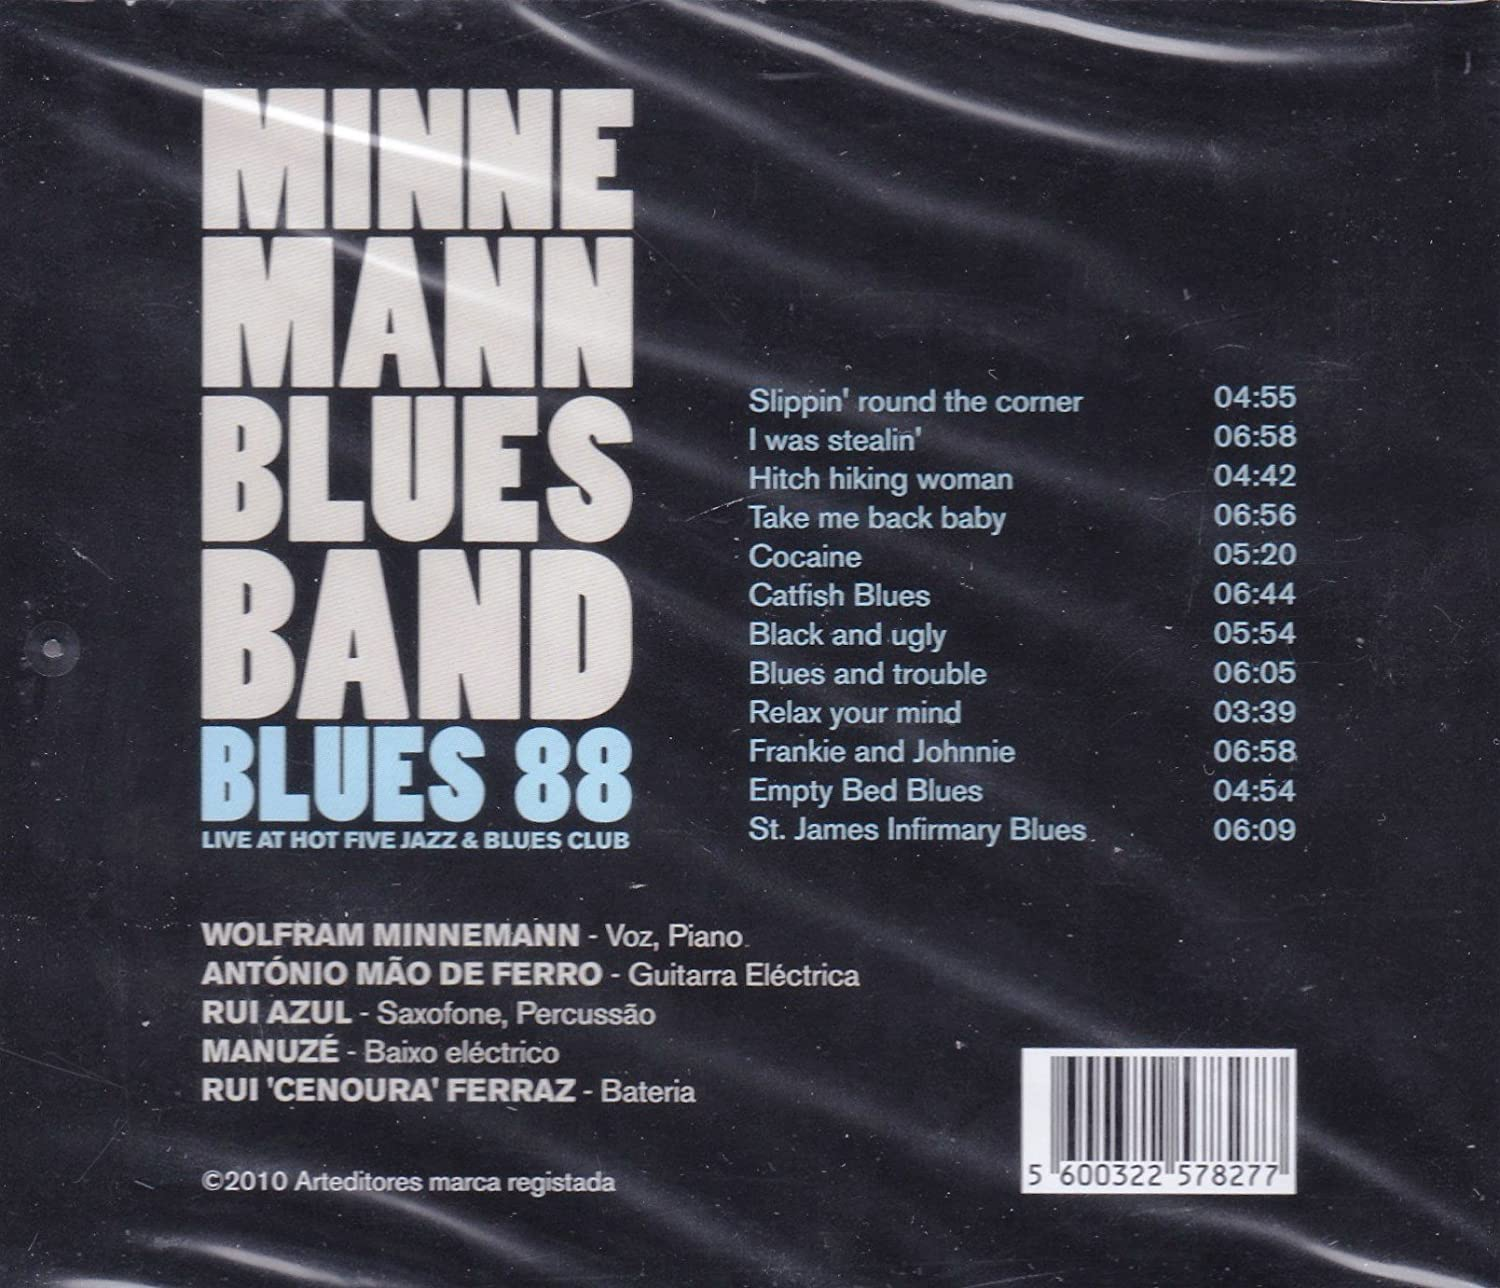 Minneman Blues Band - Minneman Blues Band - Blues 88 - Live At Hot Five Jazz & Blues Club [CD] - Amazon.com Music